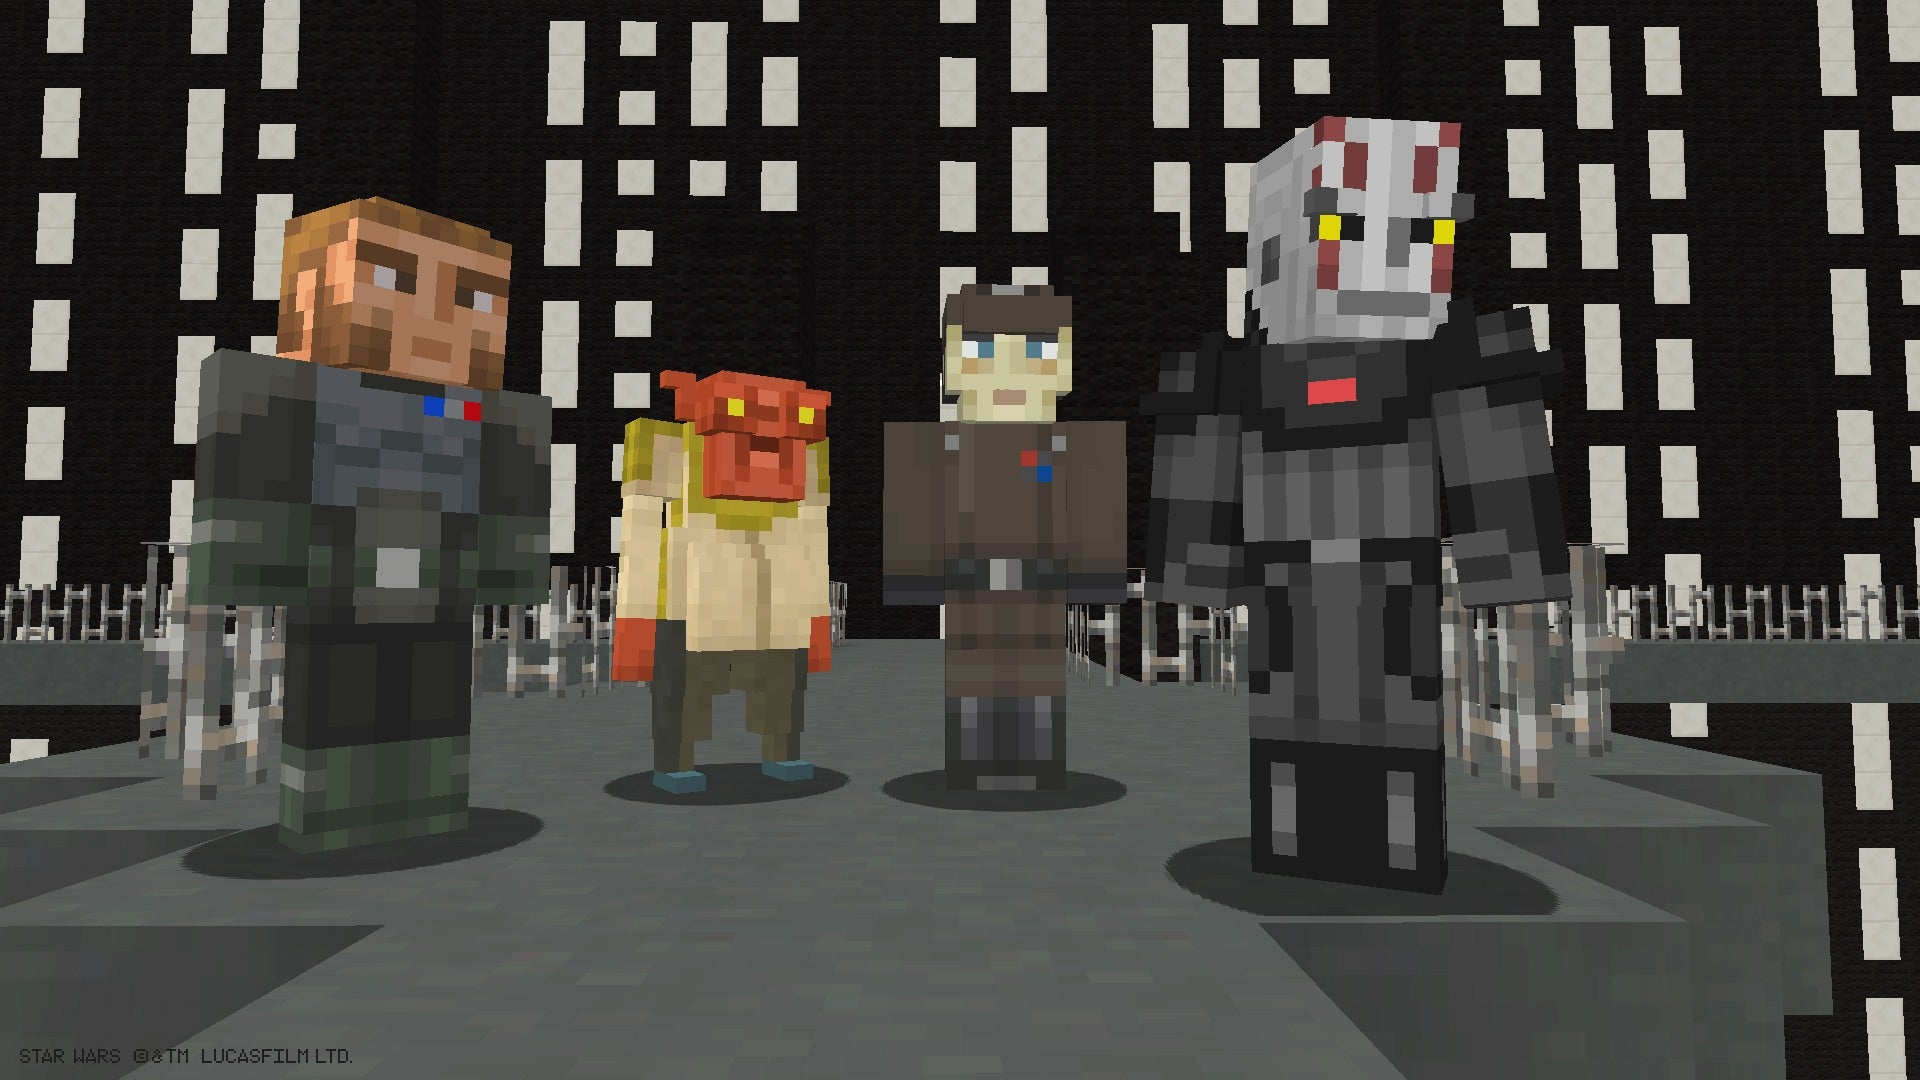 Star Wars Rebels Skins Come To Minecraft On Xbox IGN